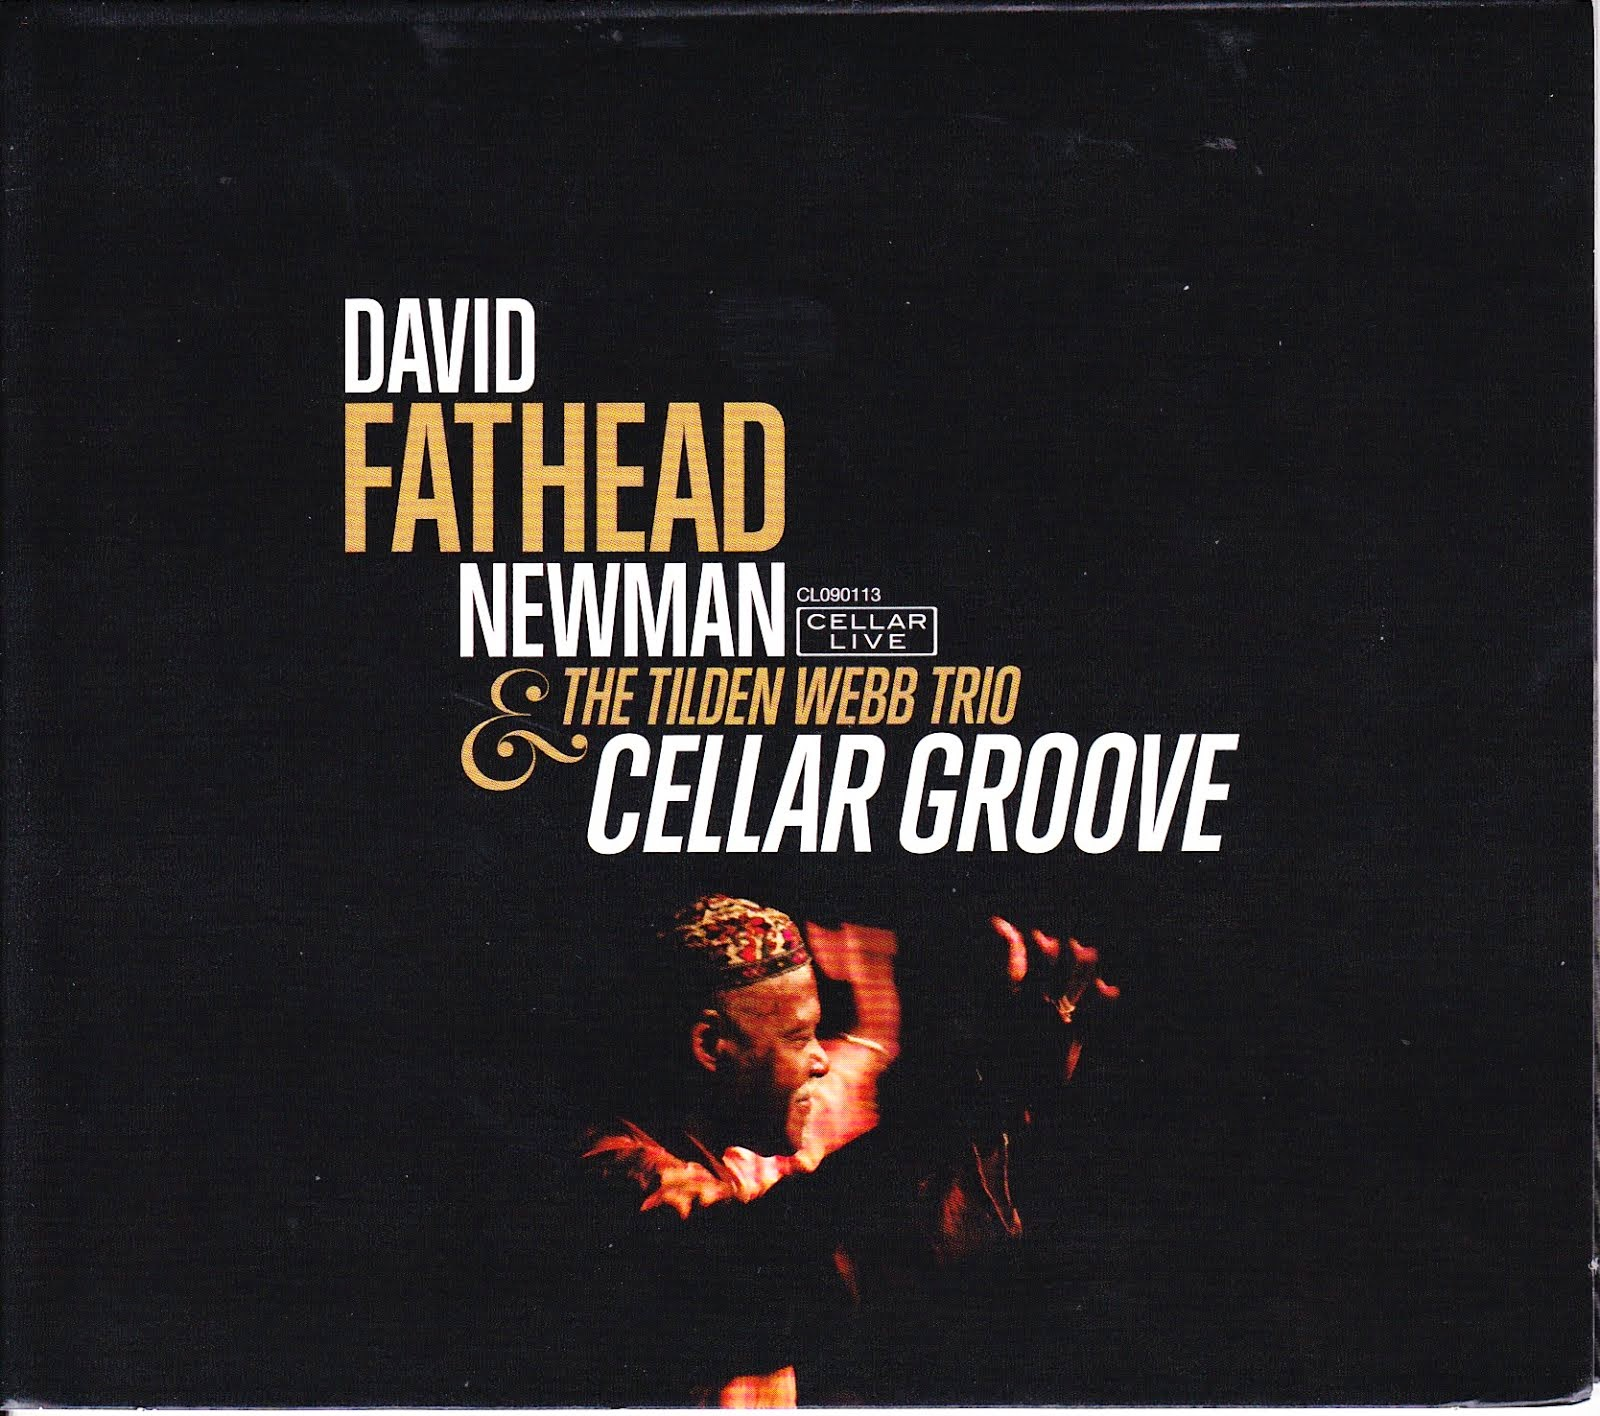 DAVID FATHEAD NEWMAN: CELLAR GROOVE